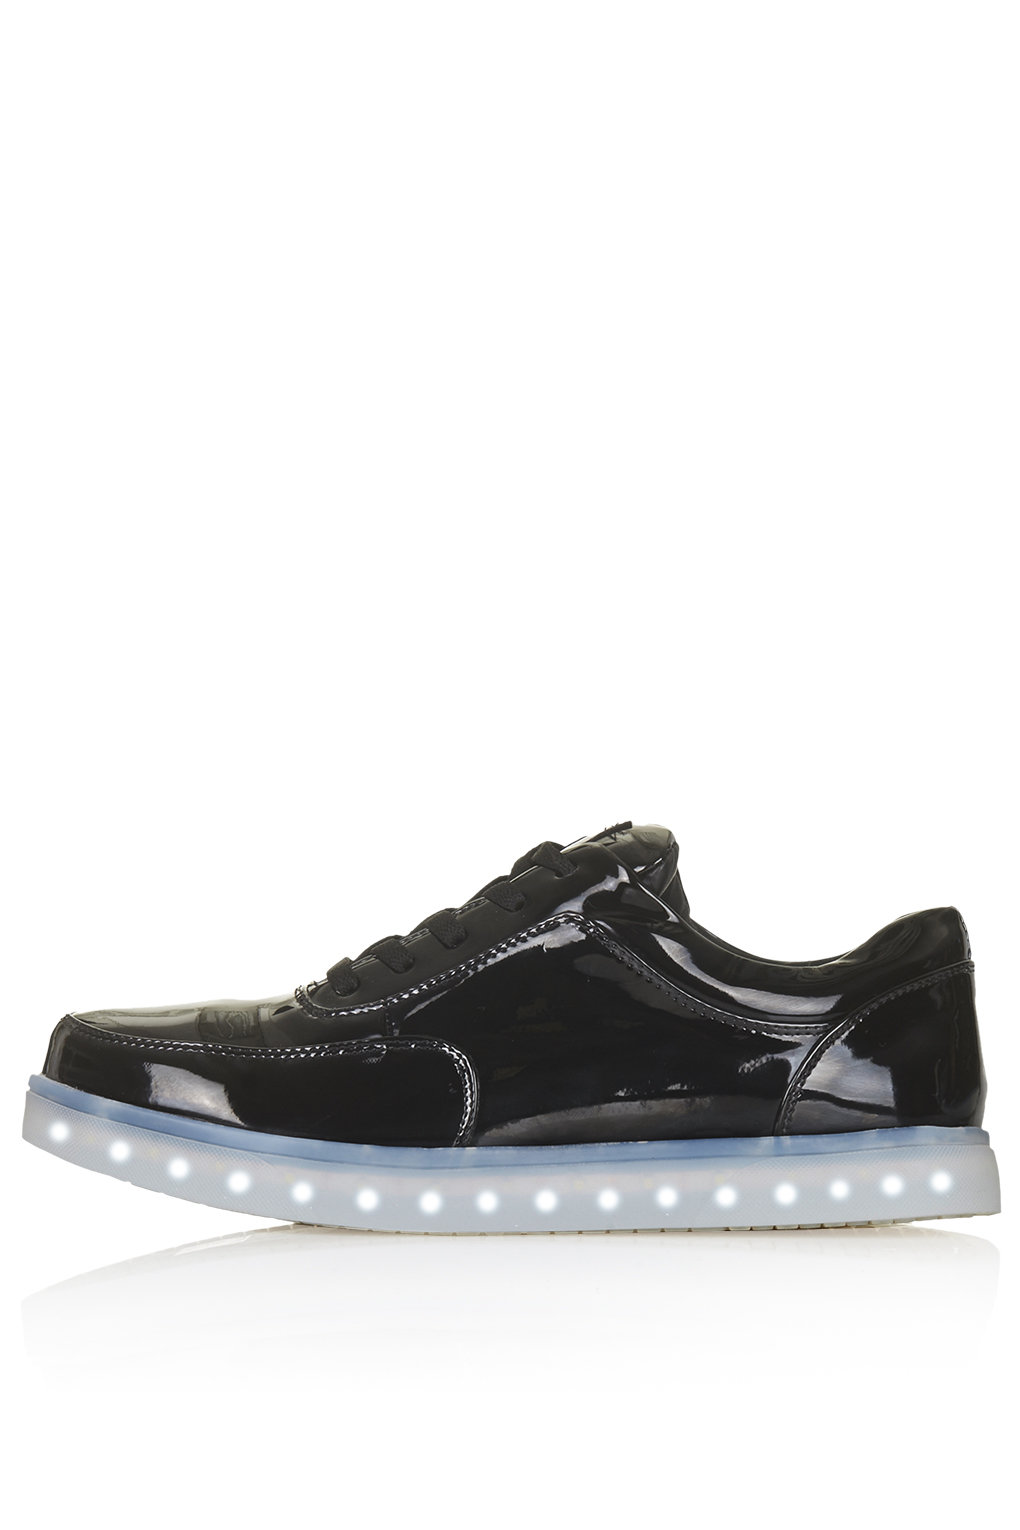 TRANCE Light Up Trainers by Topshop X Glow - Flats - Shoes